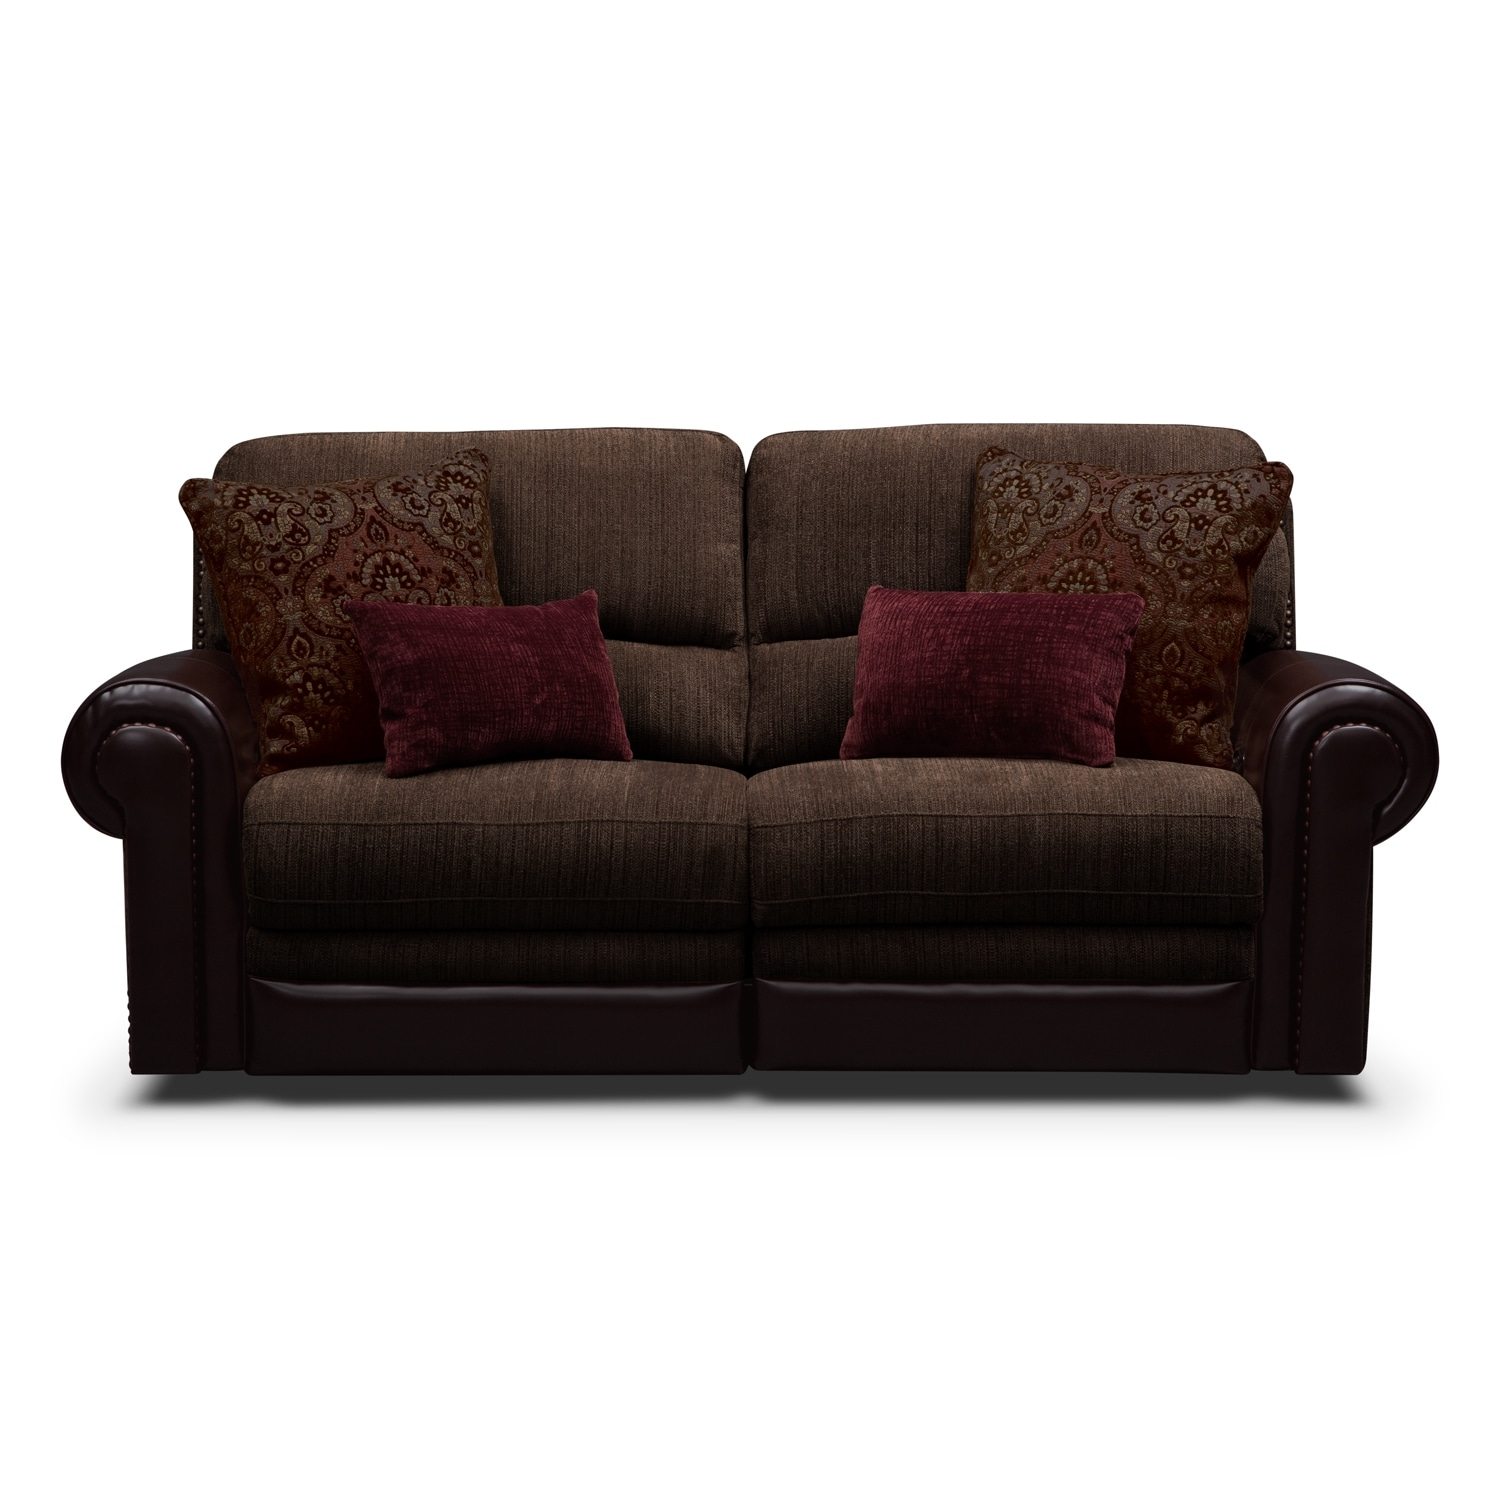 Prescott Upholstery 2 Pc Power Reclining Sofa Value